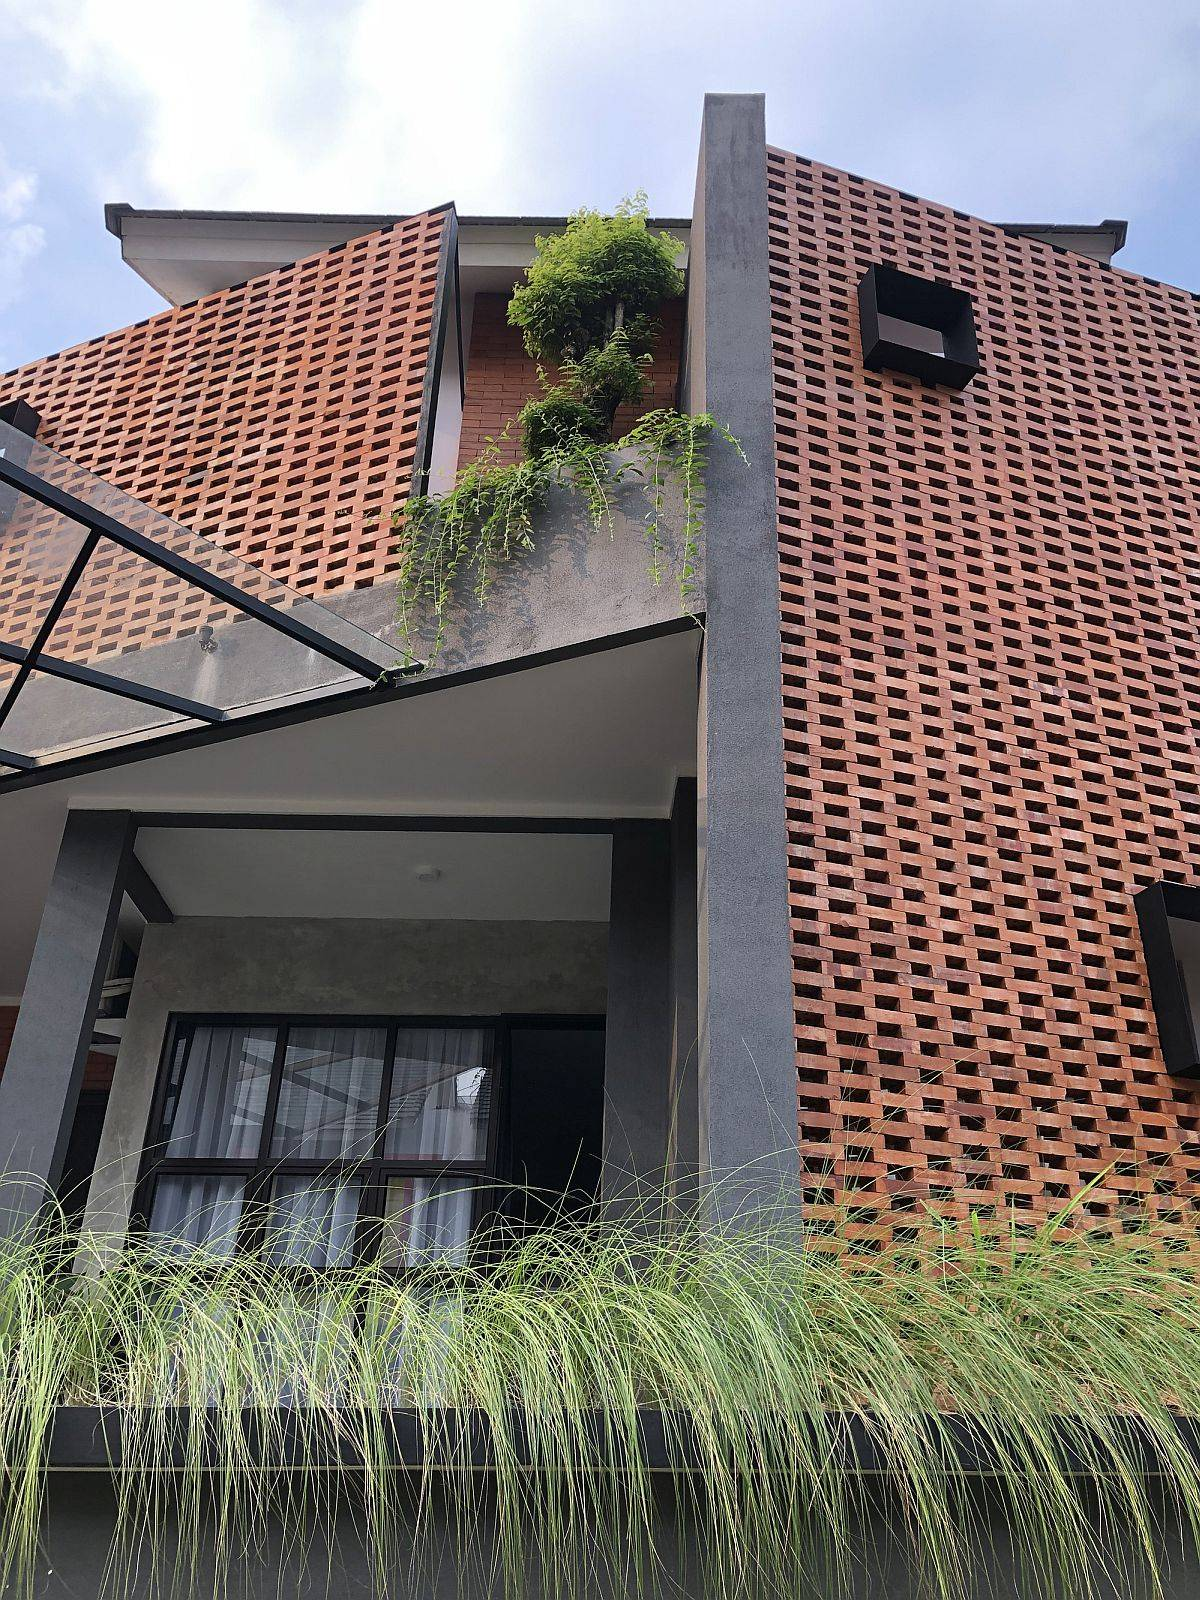 Give-the-home-a-whole-new-look-with-an-innovative-brick-facade-98077